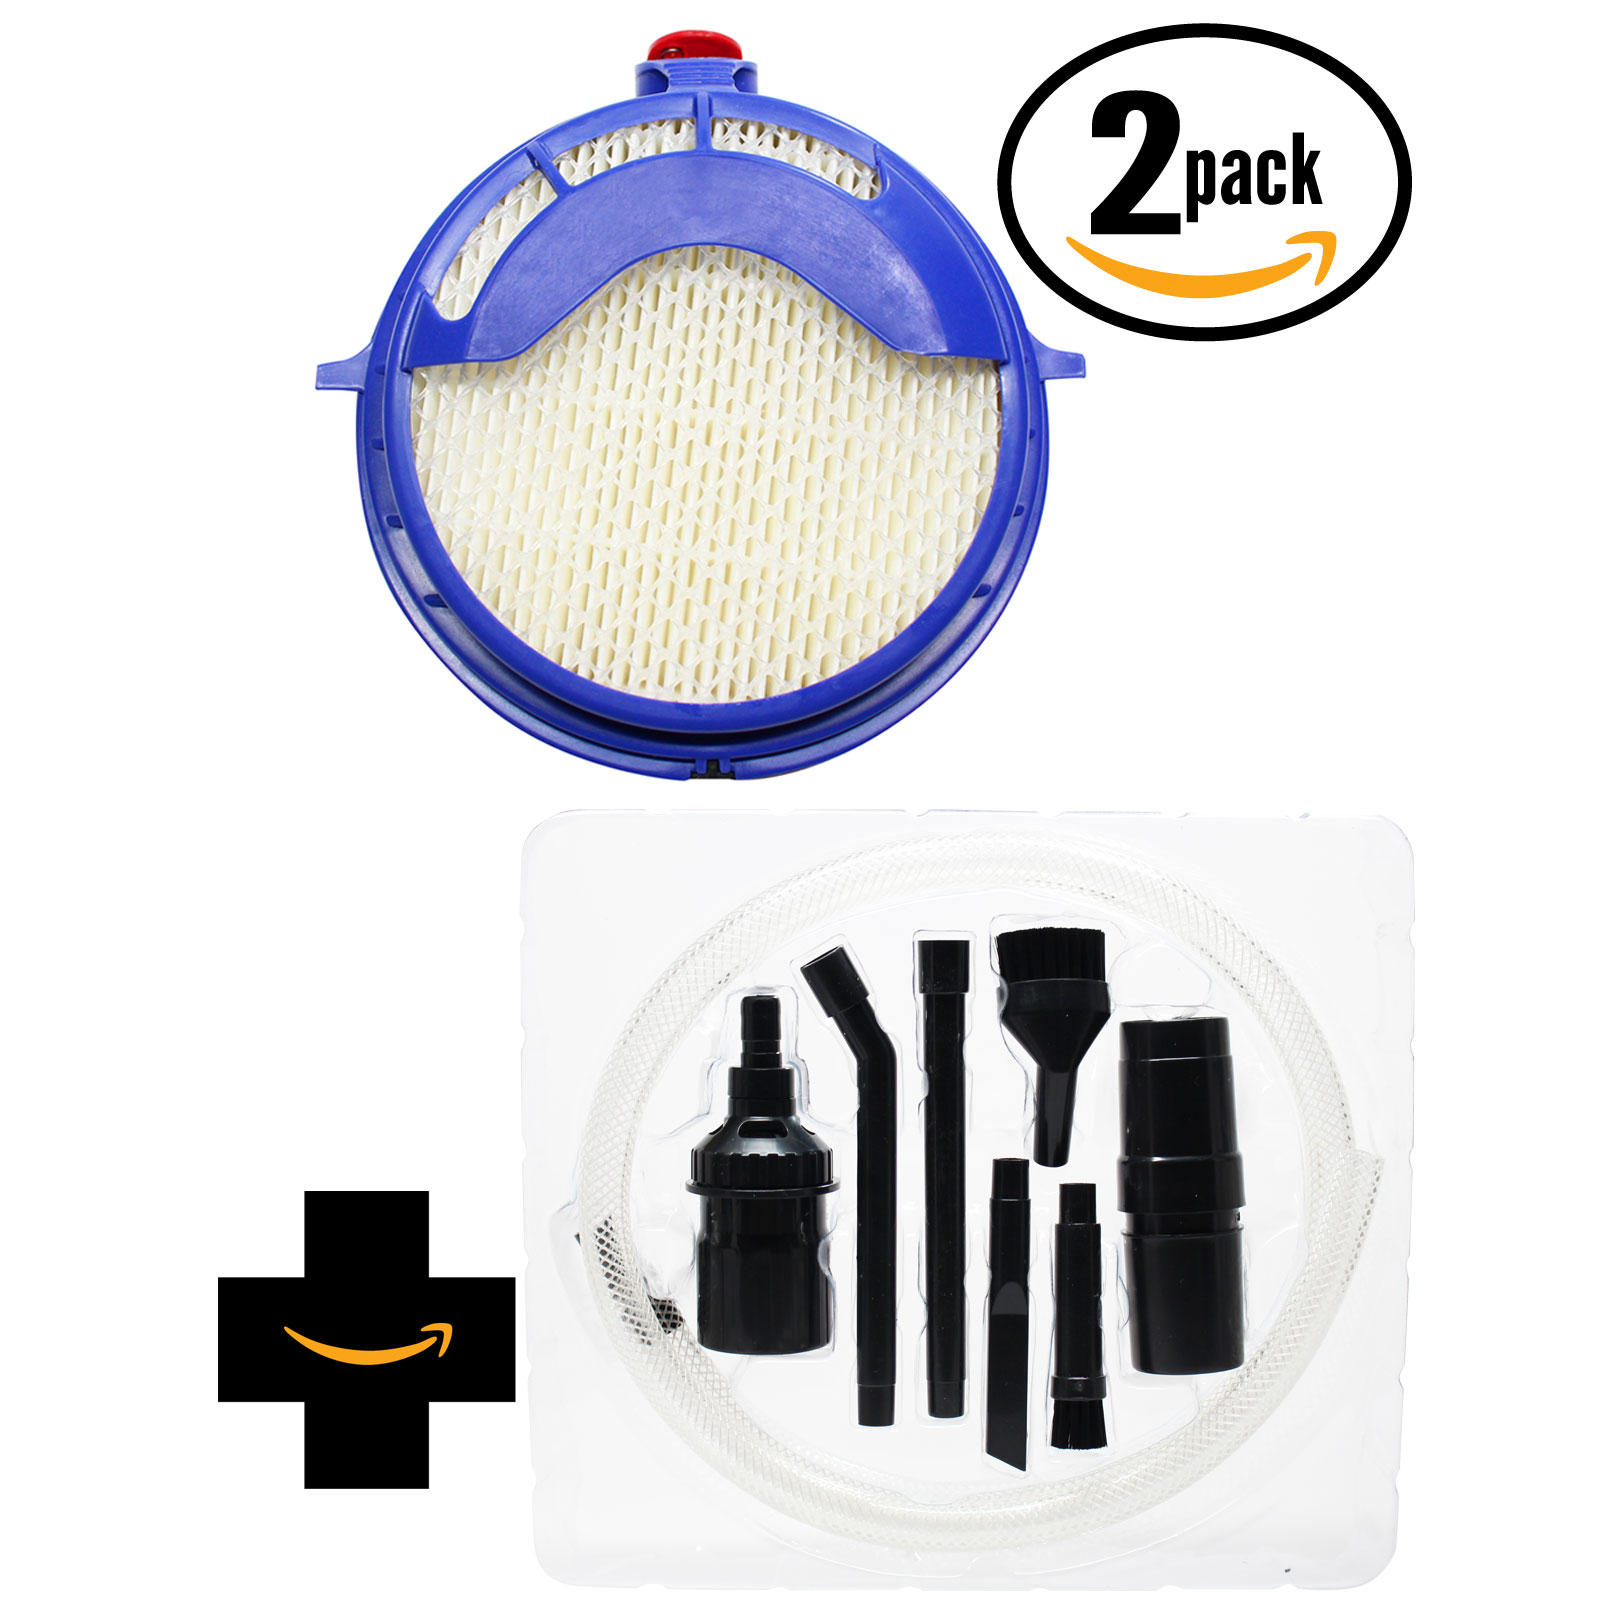 2-Pack Replacement Dyson DC25 Blueprint - Limited Edition Vacuum Post HEPA Filter with 7-Piece Micro Vacuum Attachment Kit - Compatible Dyson 916188-05, 91618805, 916188 05 Post HEPA Filter